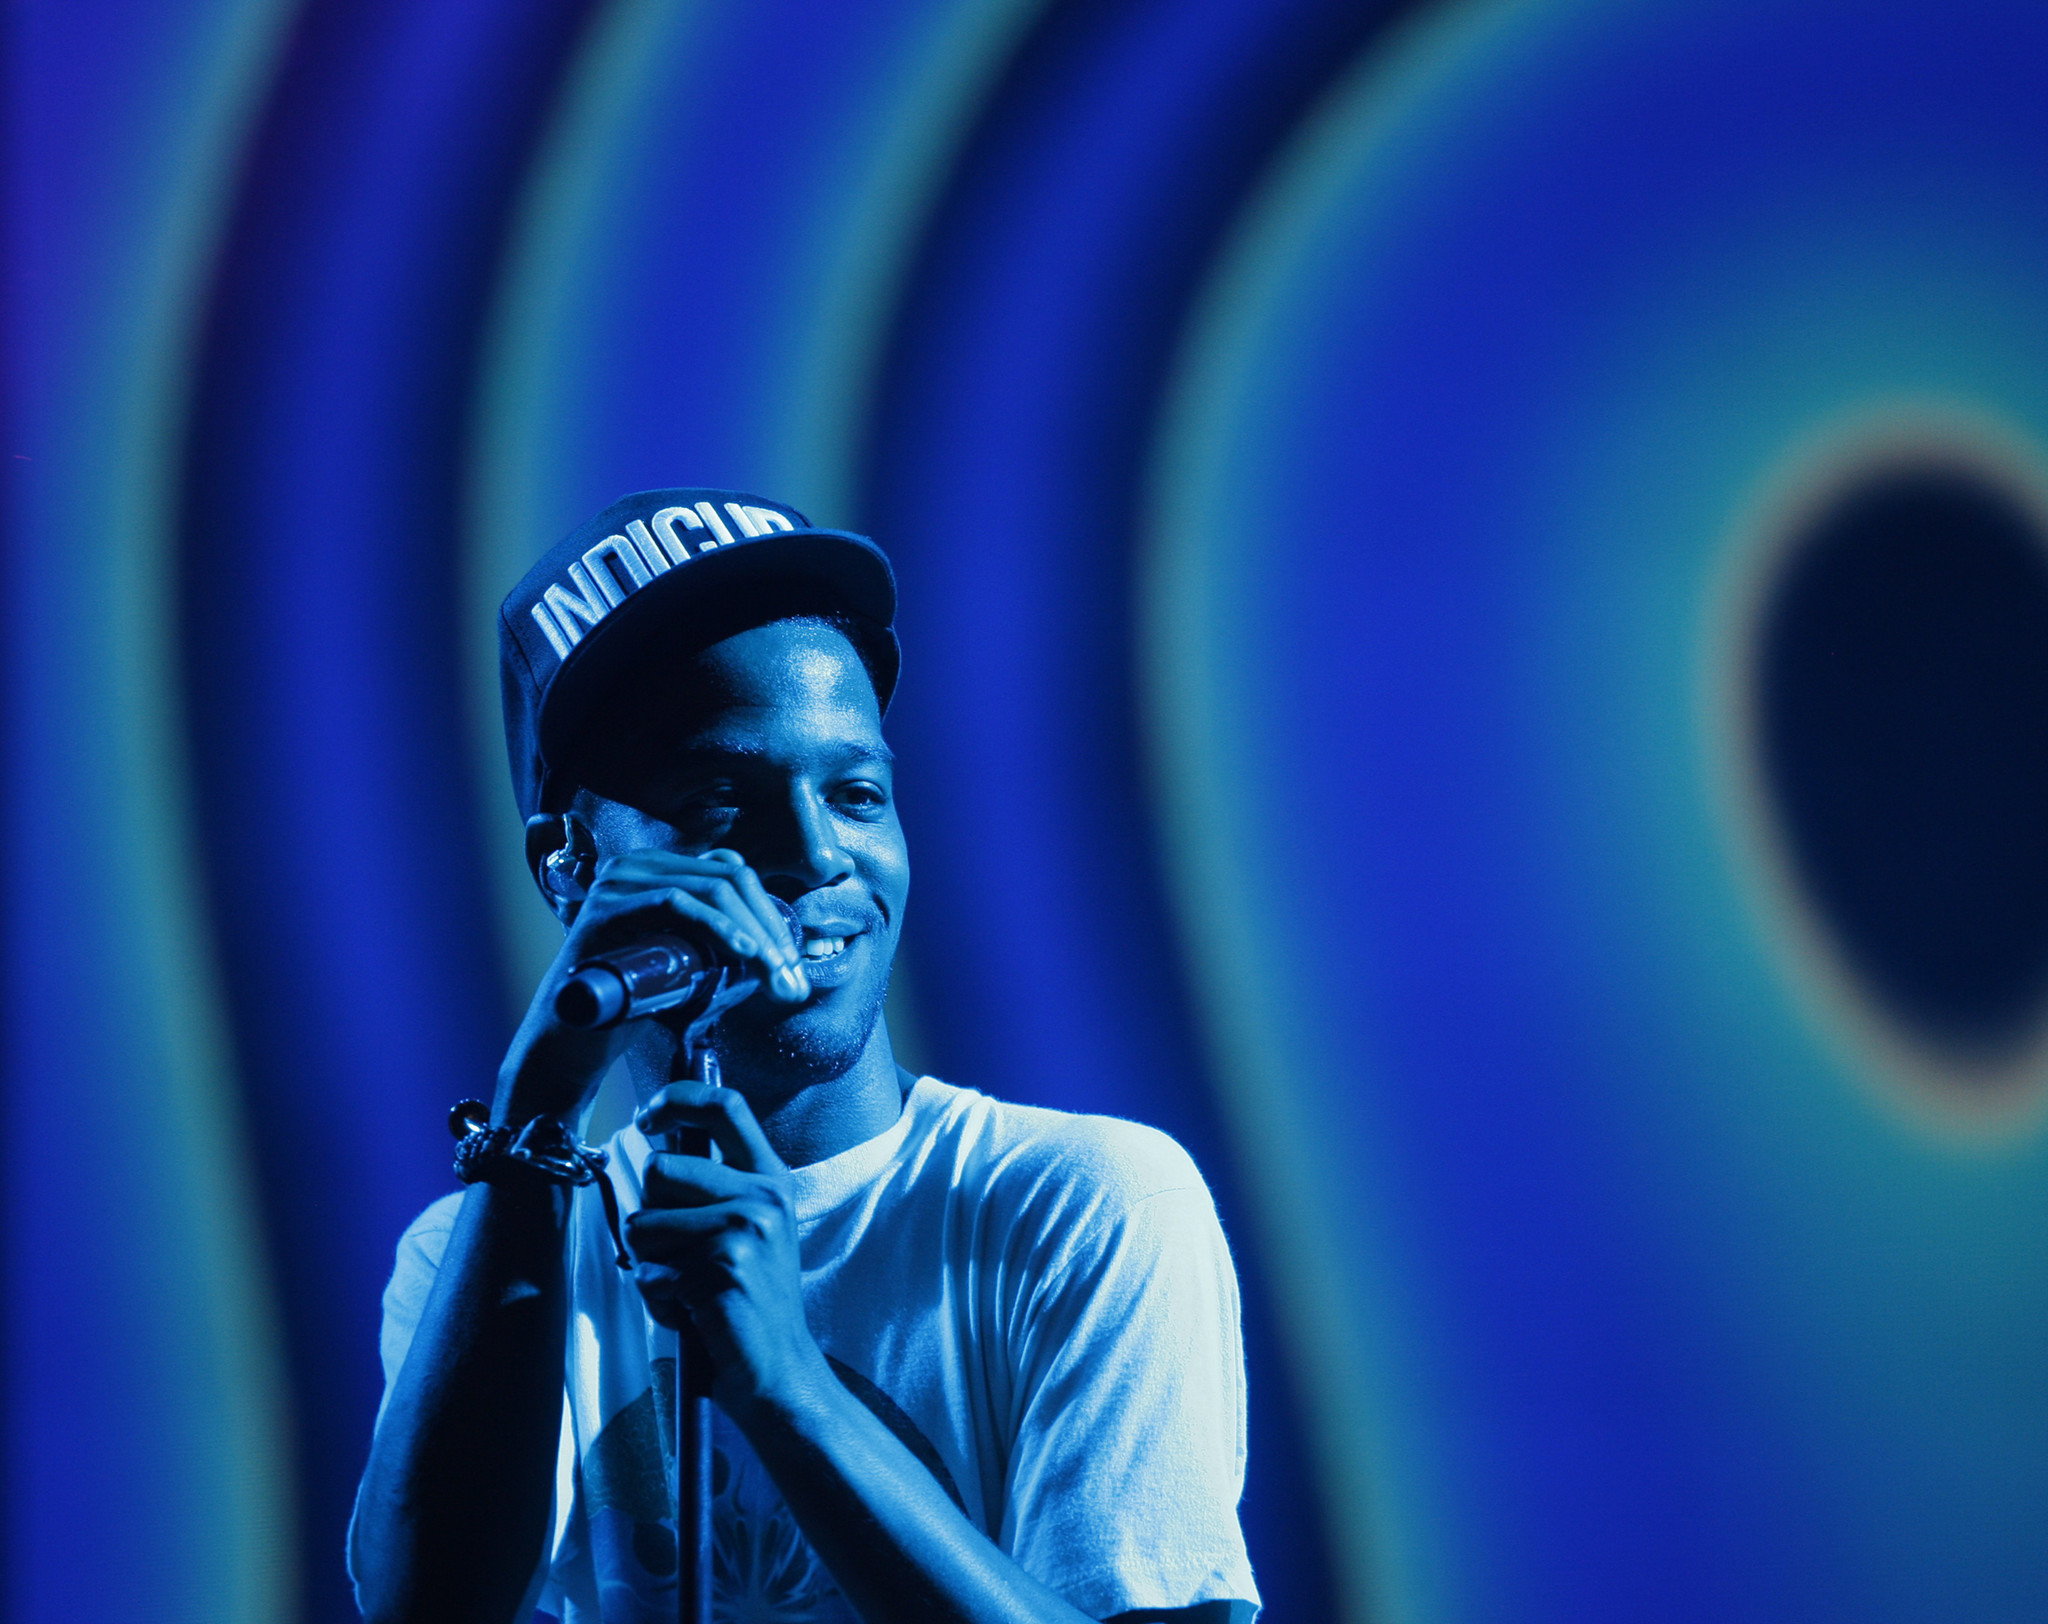 Citing depression and suicidal thoughts, rapper Kid Cudi checks himself into rehab